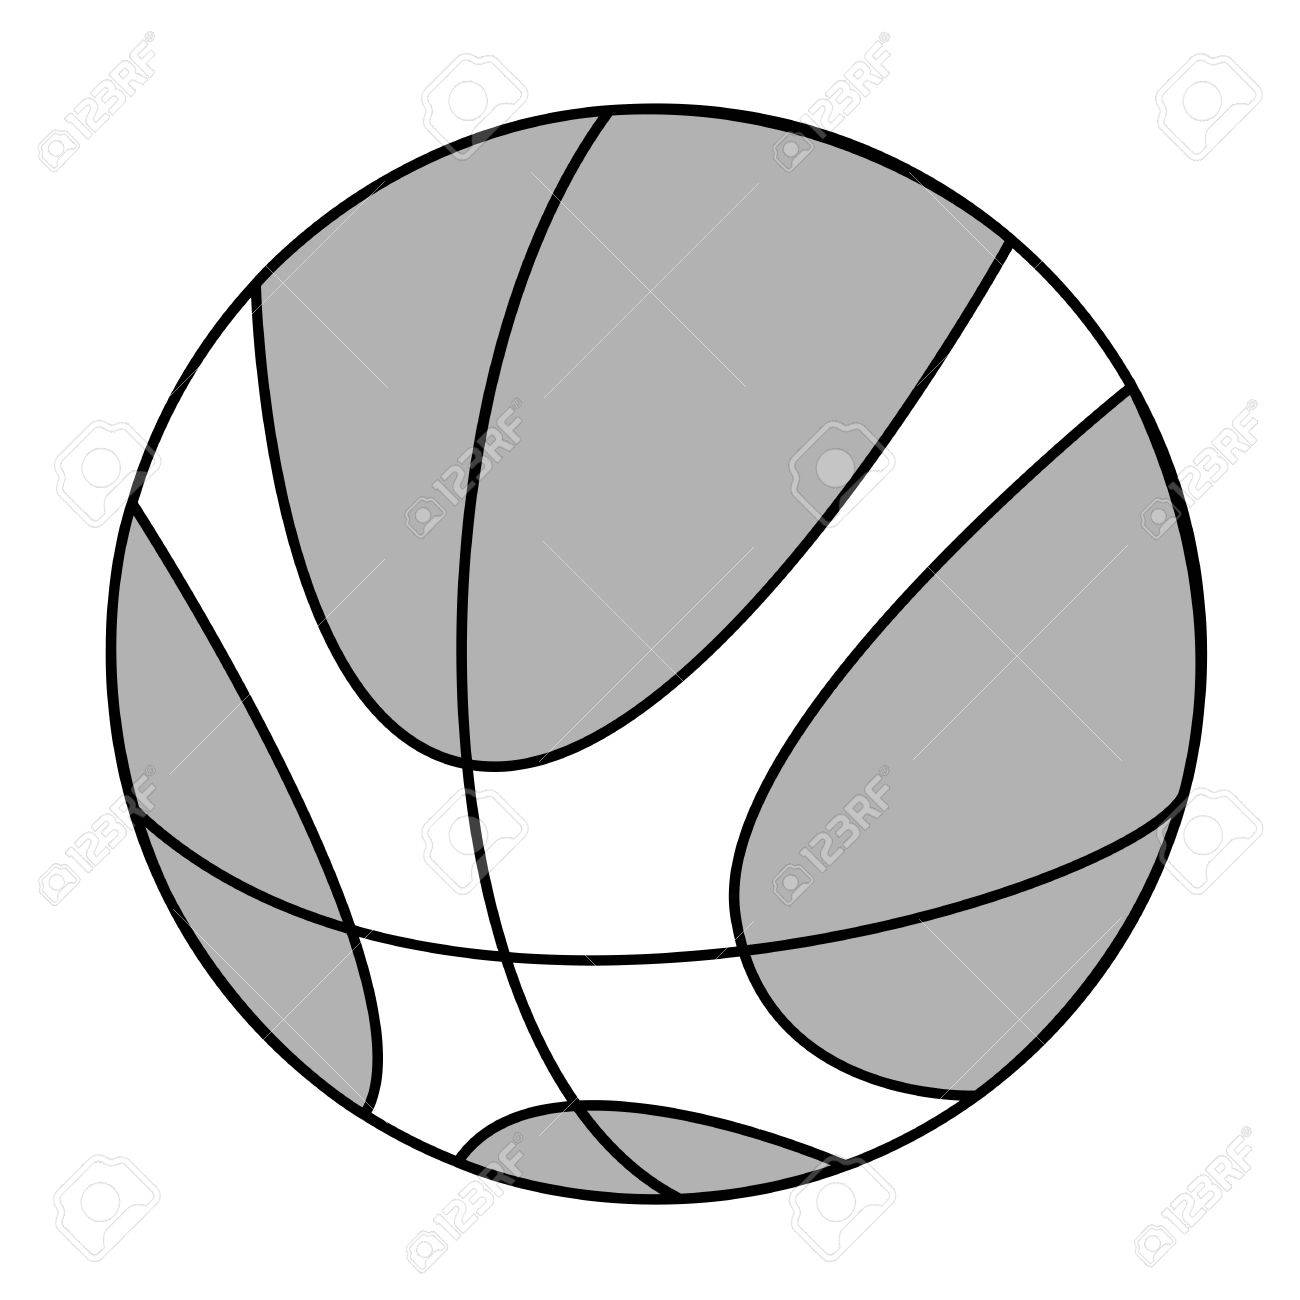 1300x1300 Black Outline Vector Basketball On White Background. Royalty Free